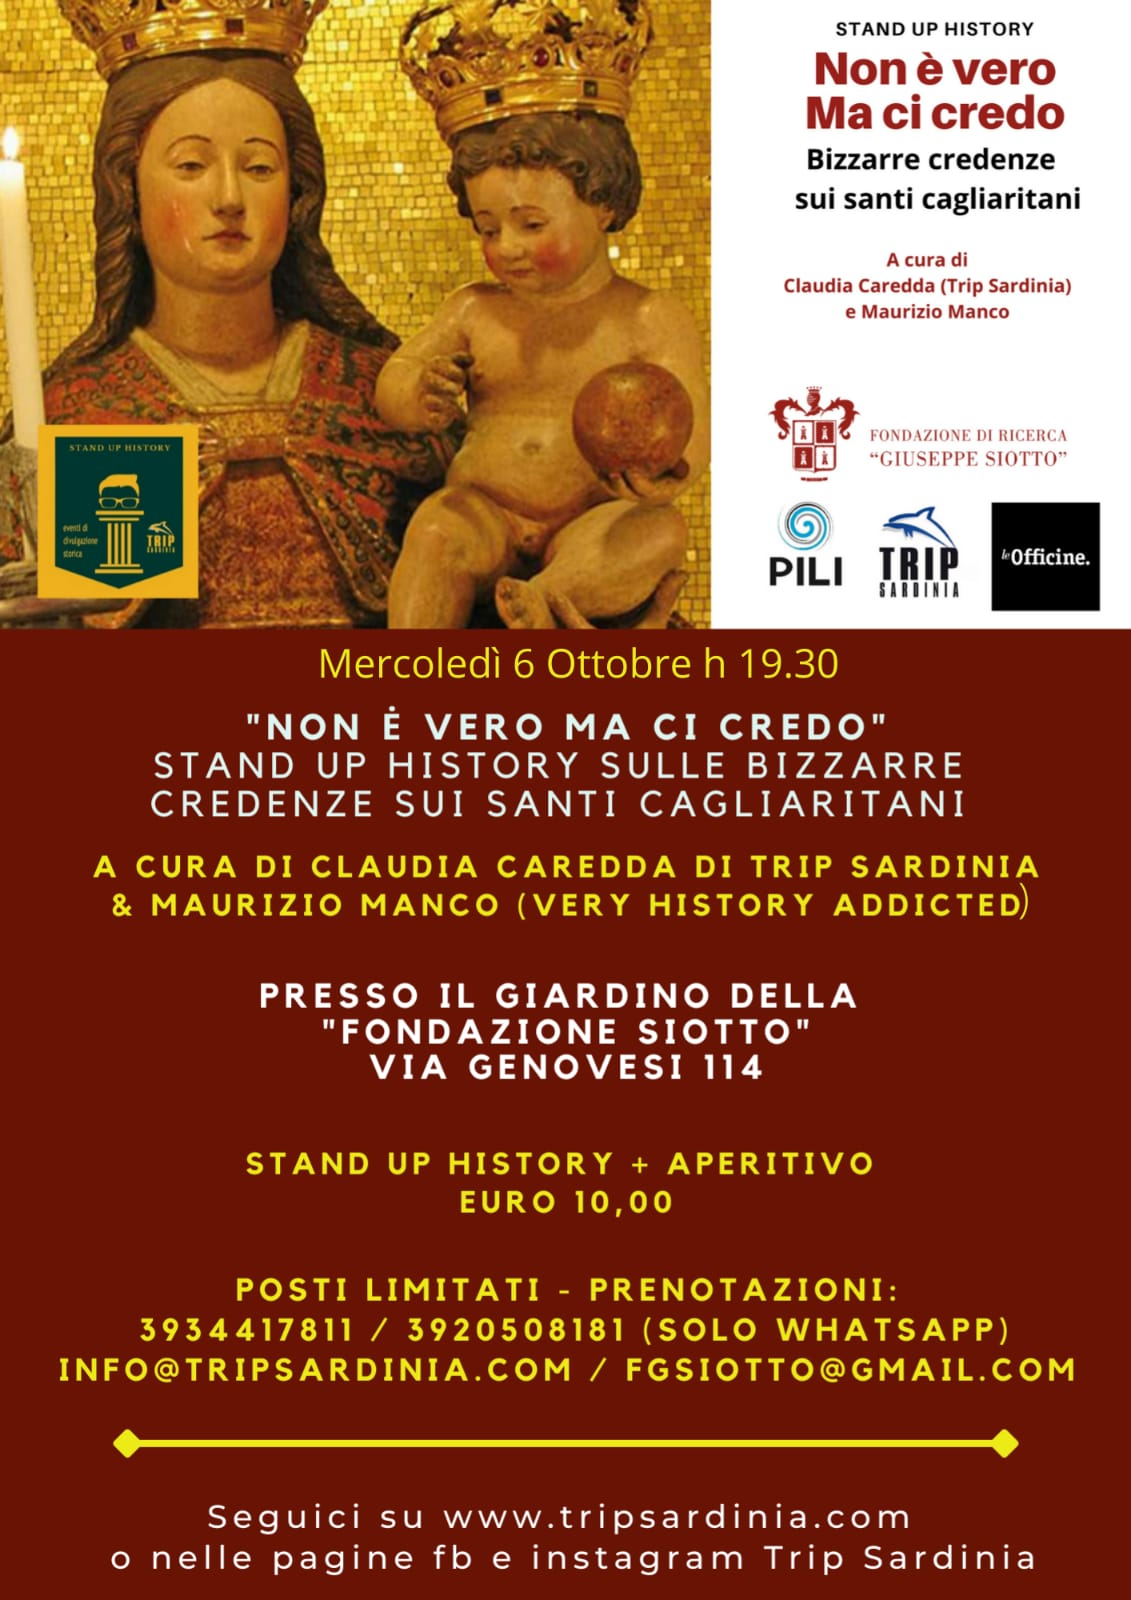 Stand up history a Palazzo Siotto